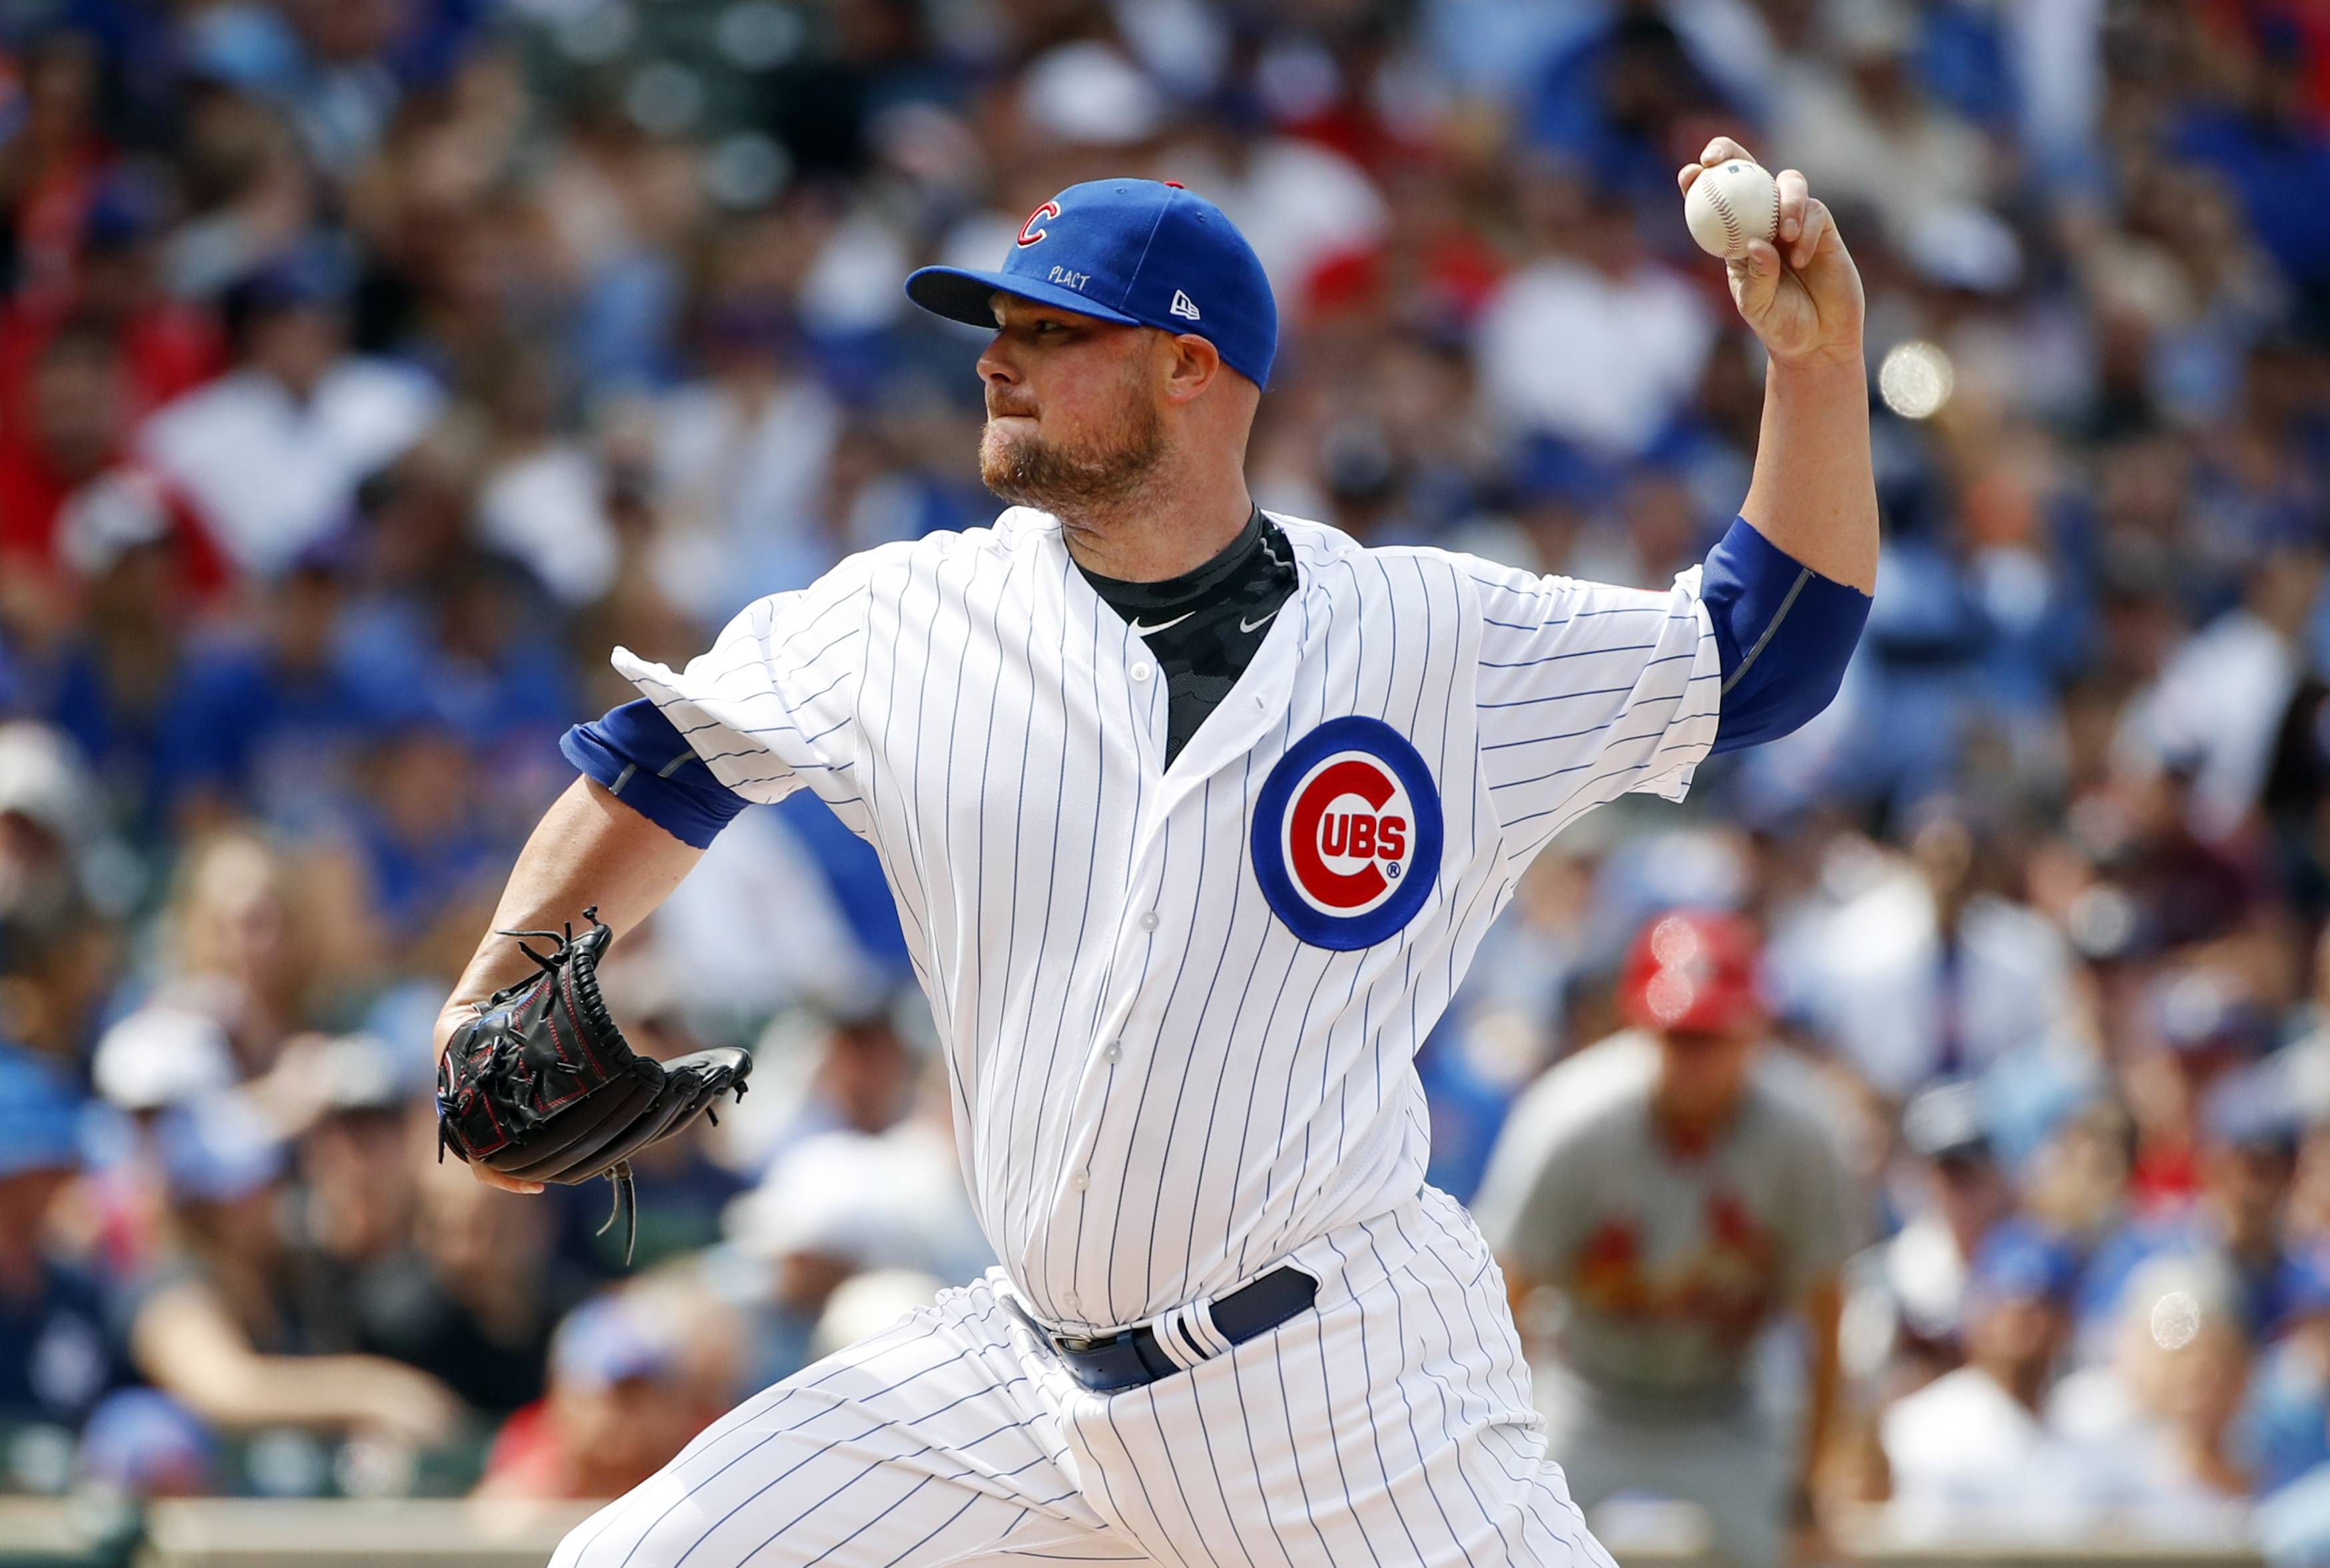 The Chicago Cubs will try to take three of four from the Chicago White Sox Thursday night as they send lefty Jon Lester to the mound.